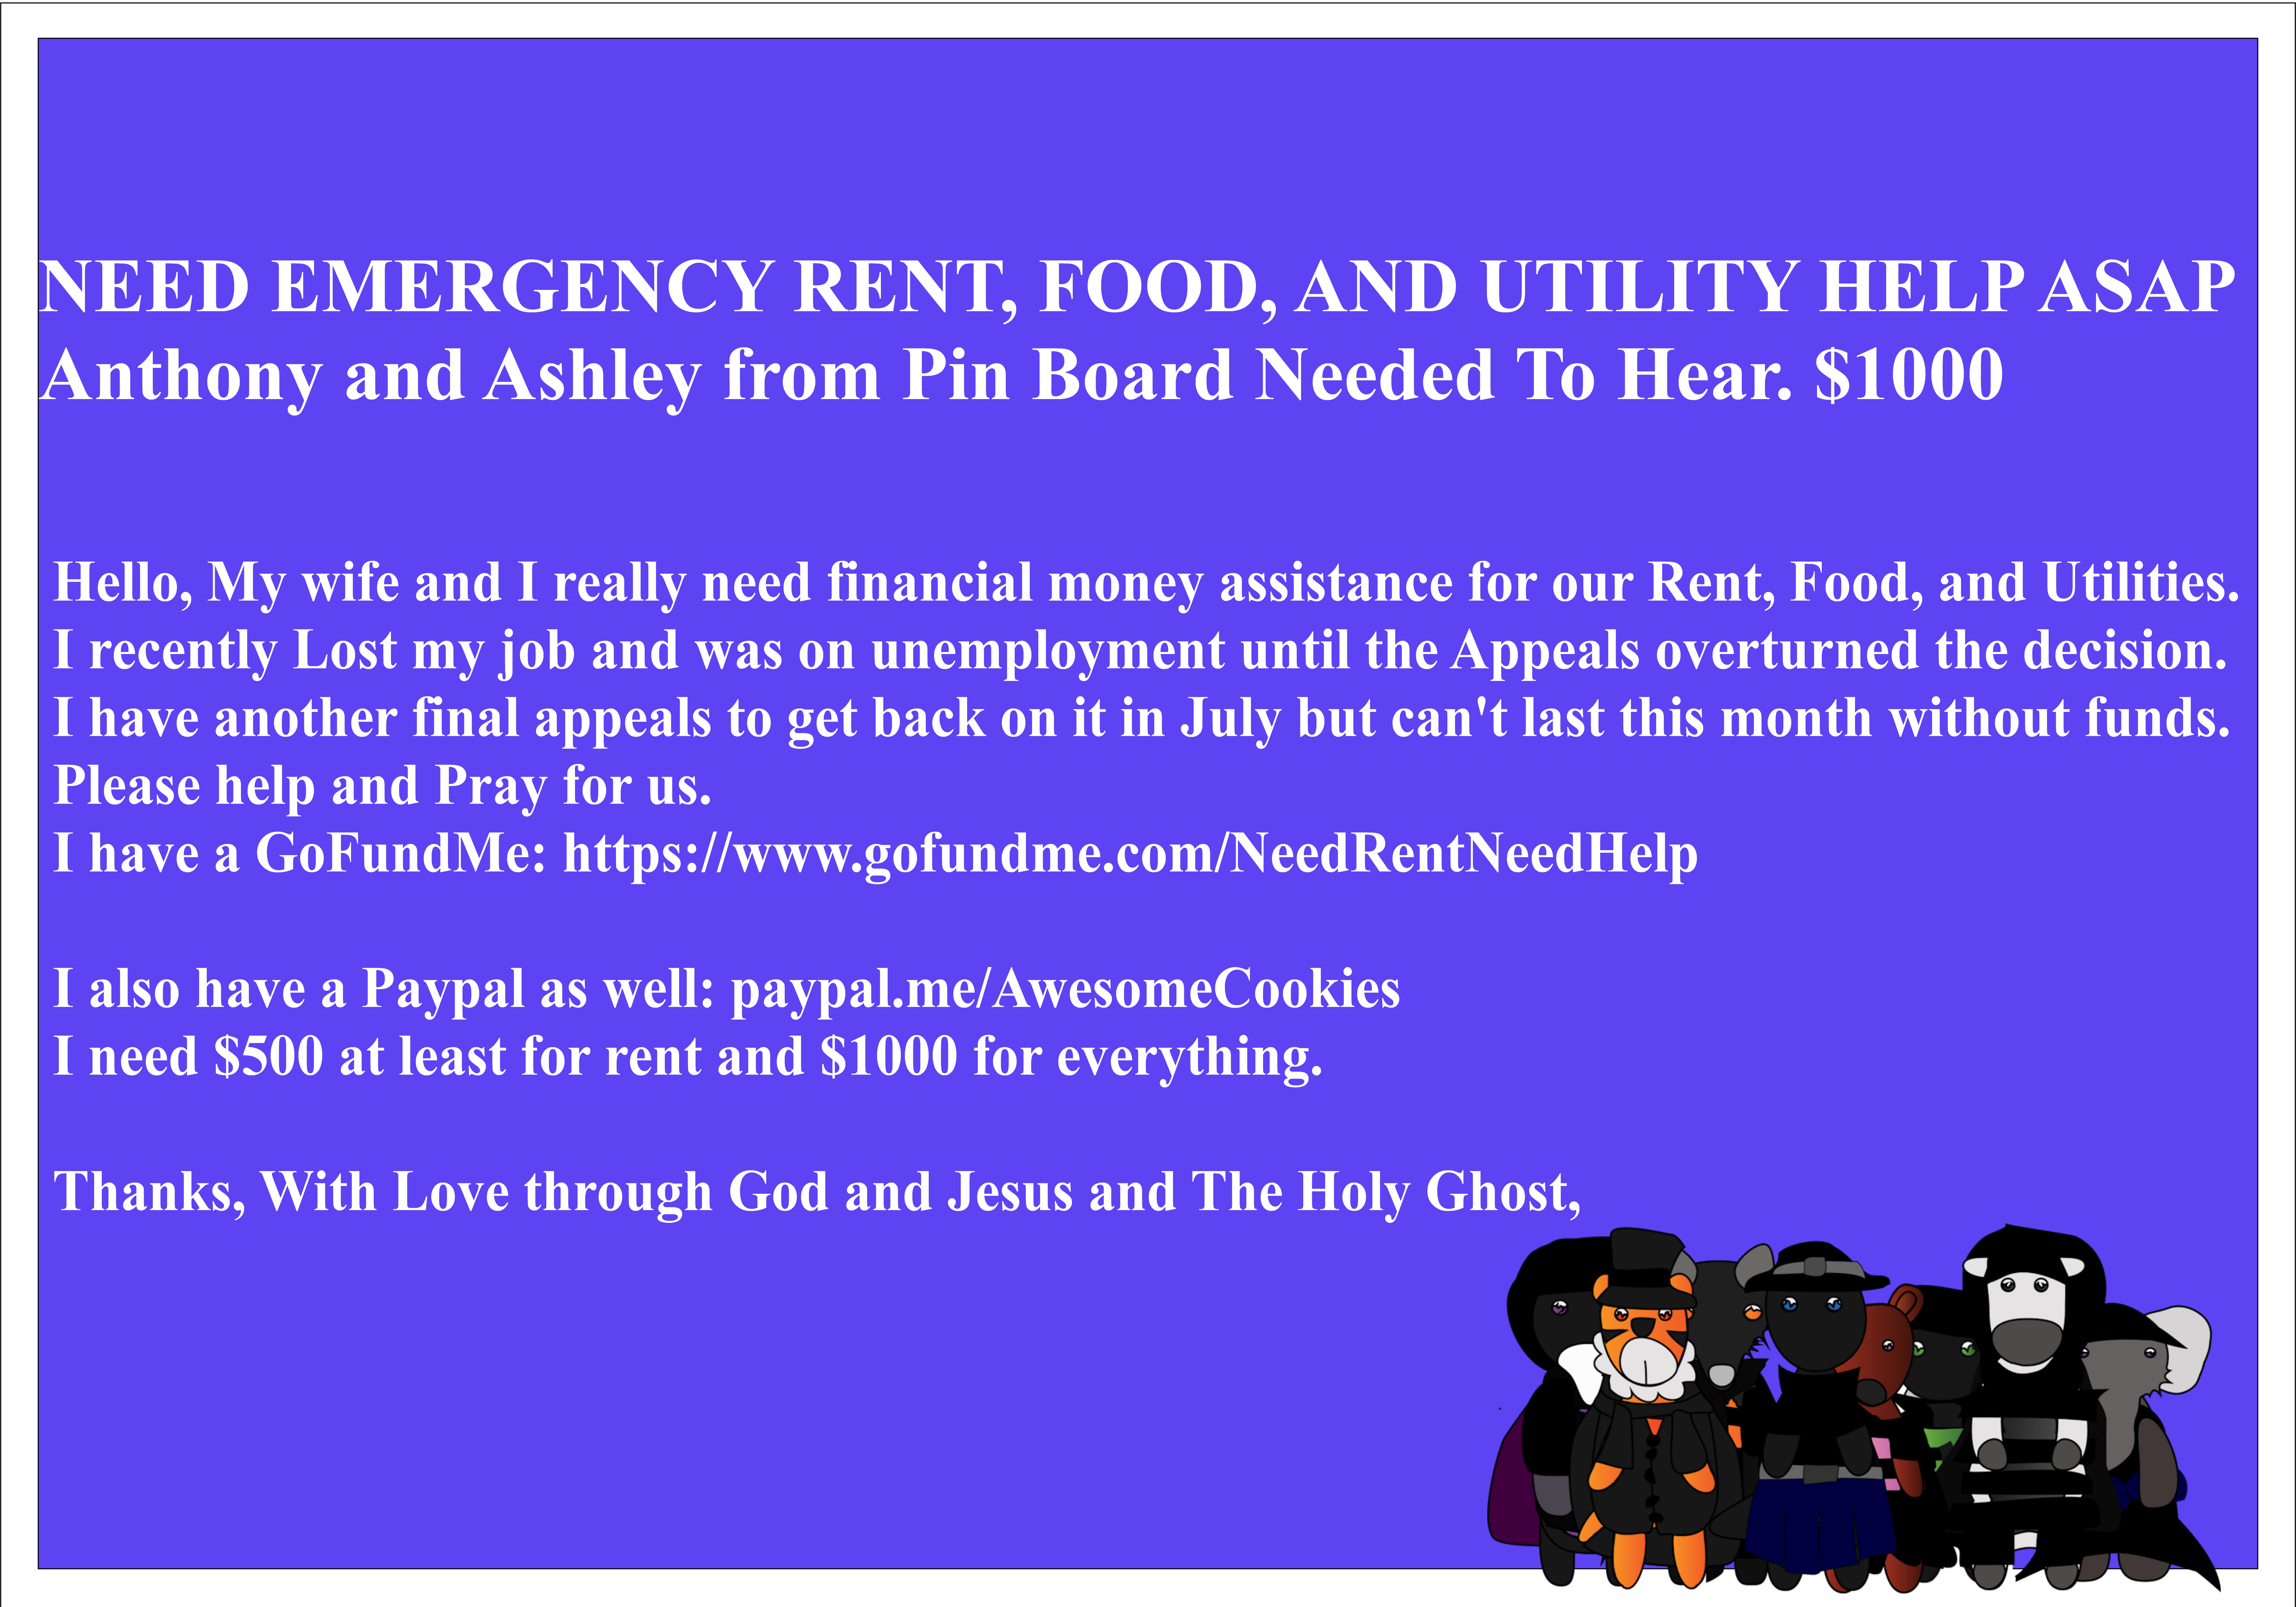 hello, my wife and i really need financial money assistance for our